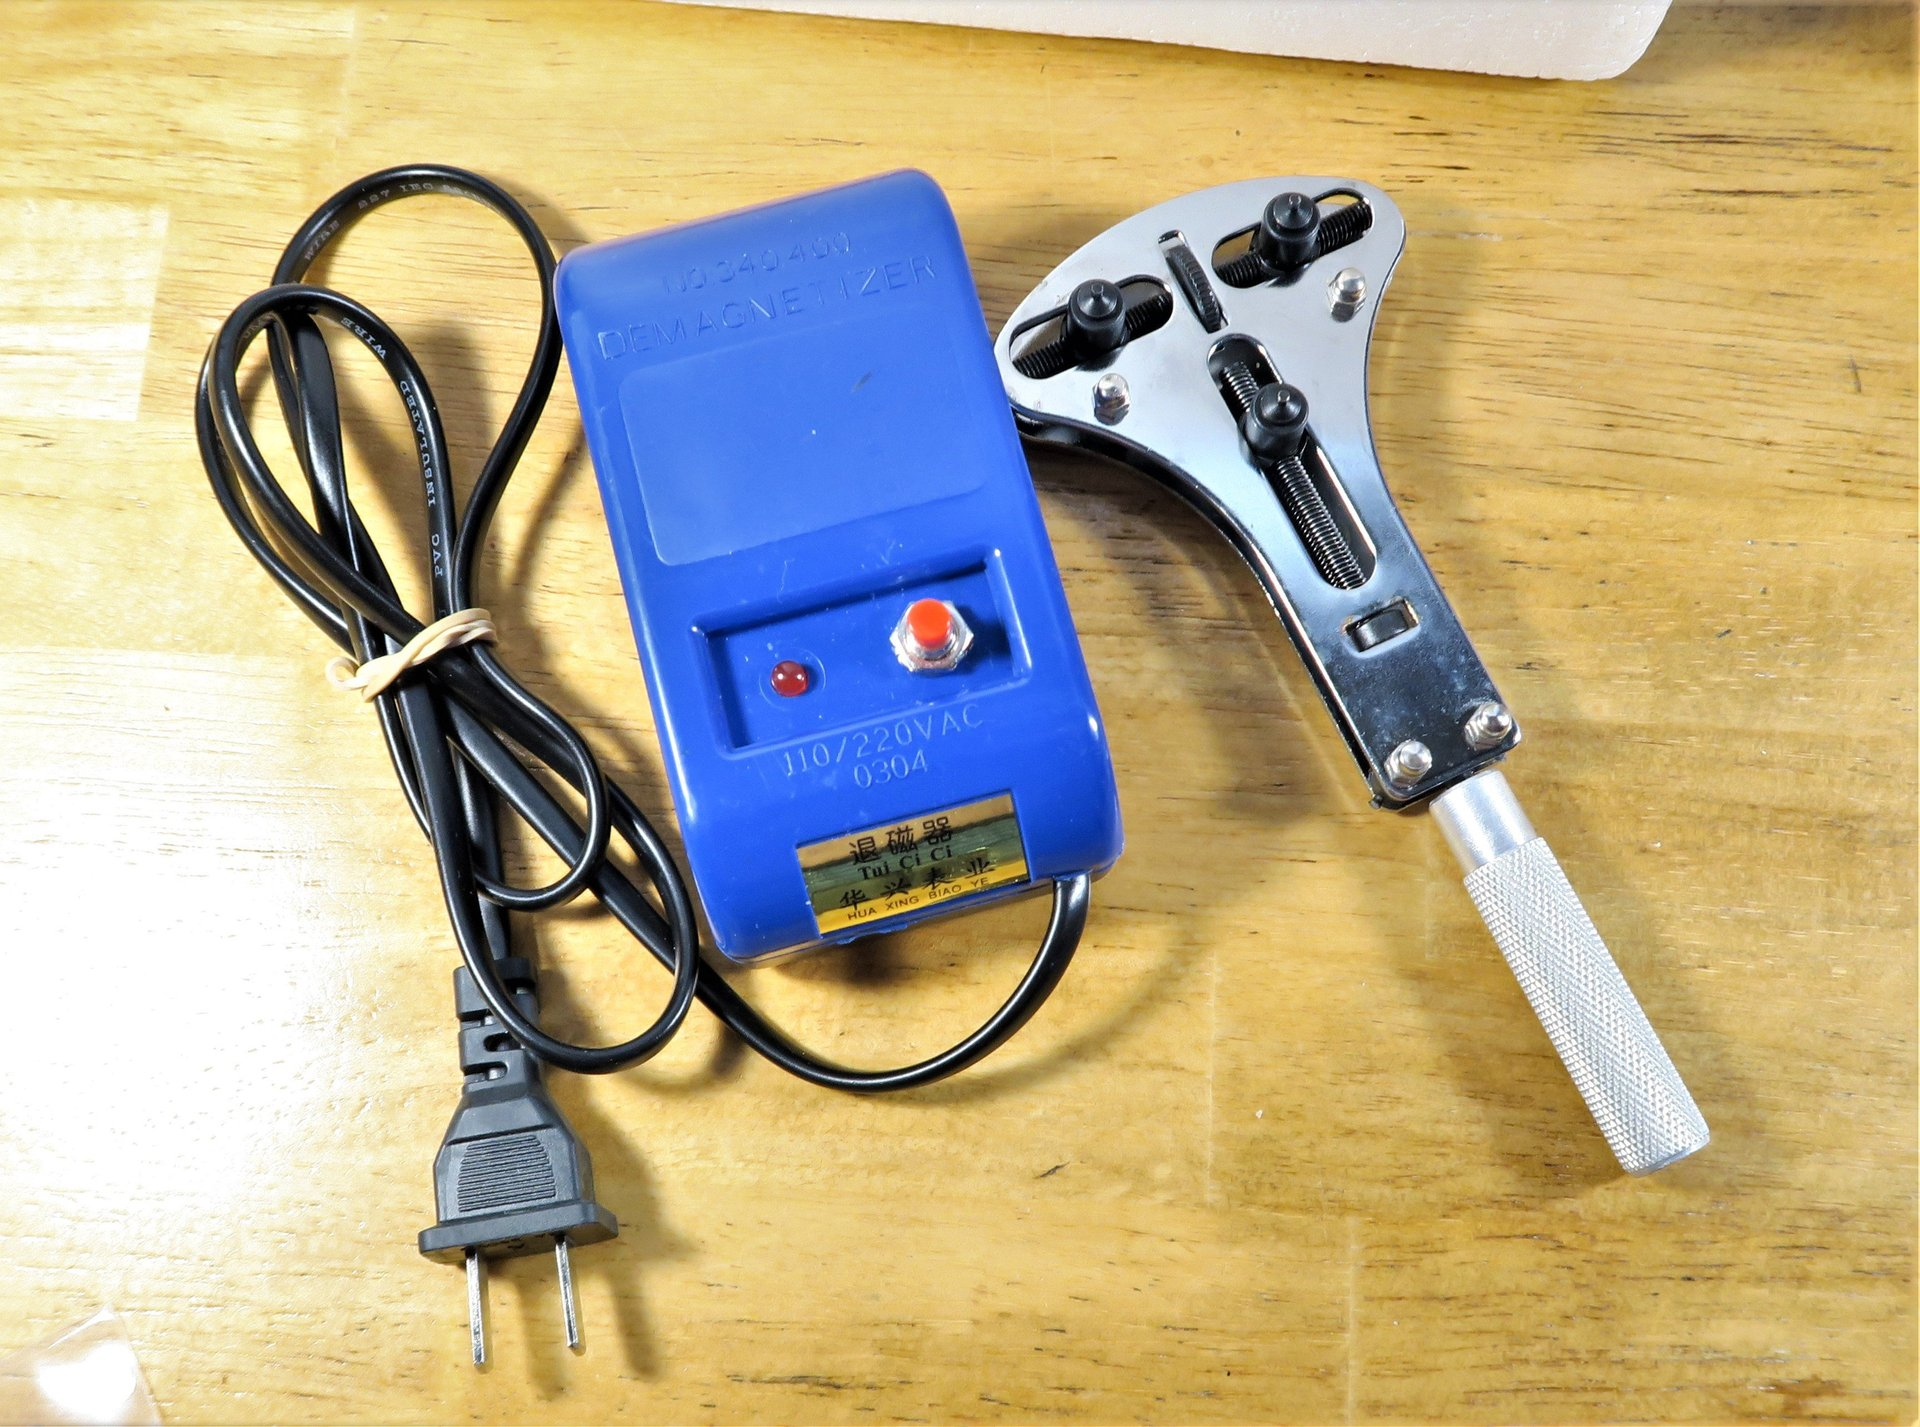 Calipers Pneumatic tool Tool Saw Dvi cable